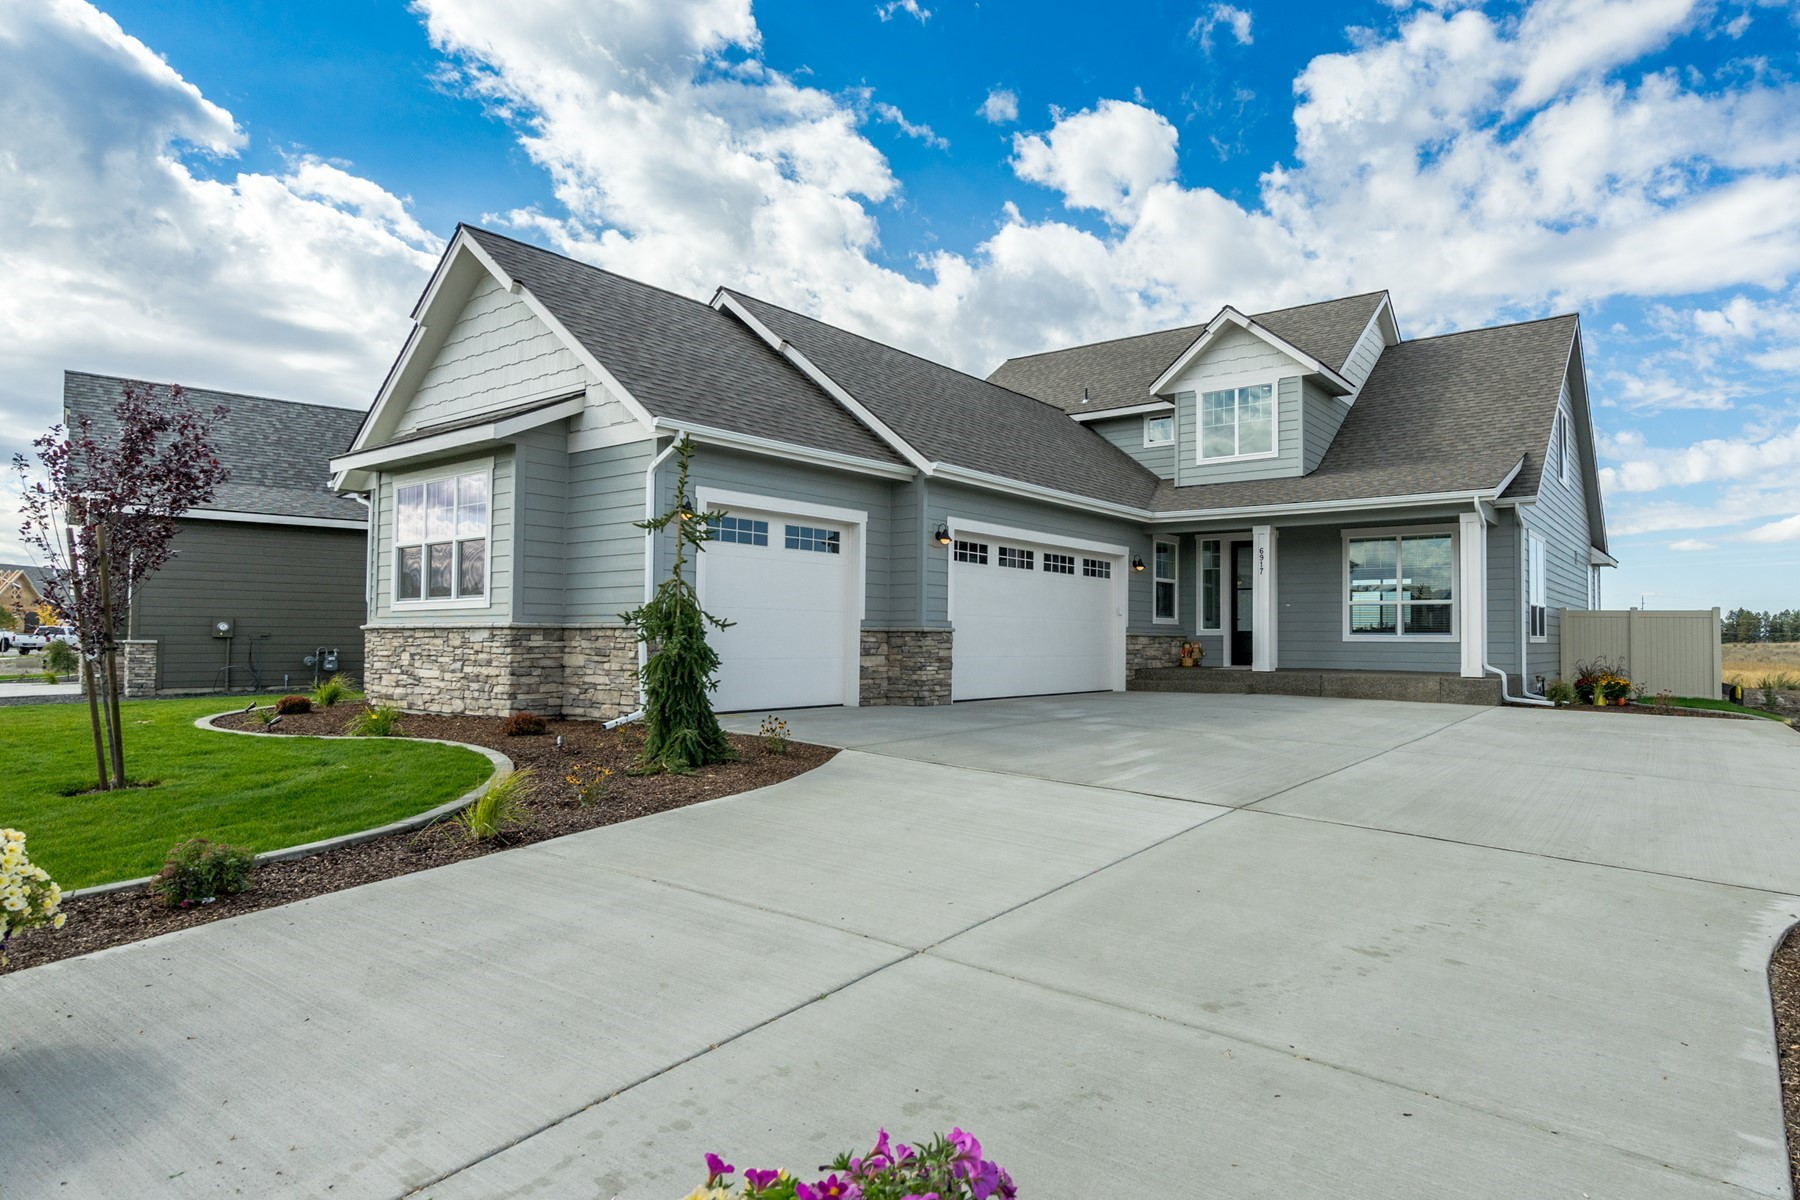 Single Family Homes for Sale at The Gallatin by Architerra Homes 3043 N Backweight Loop Post Falls, Idaho 83854 United States